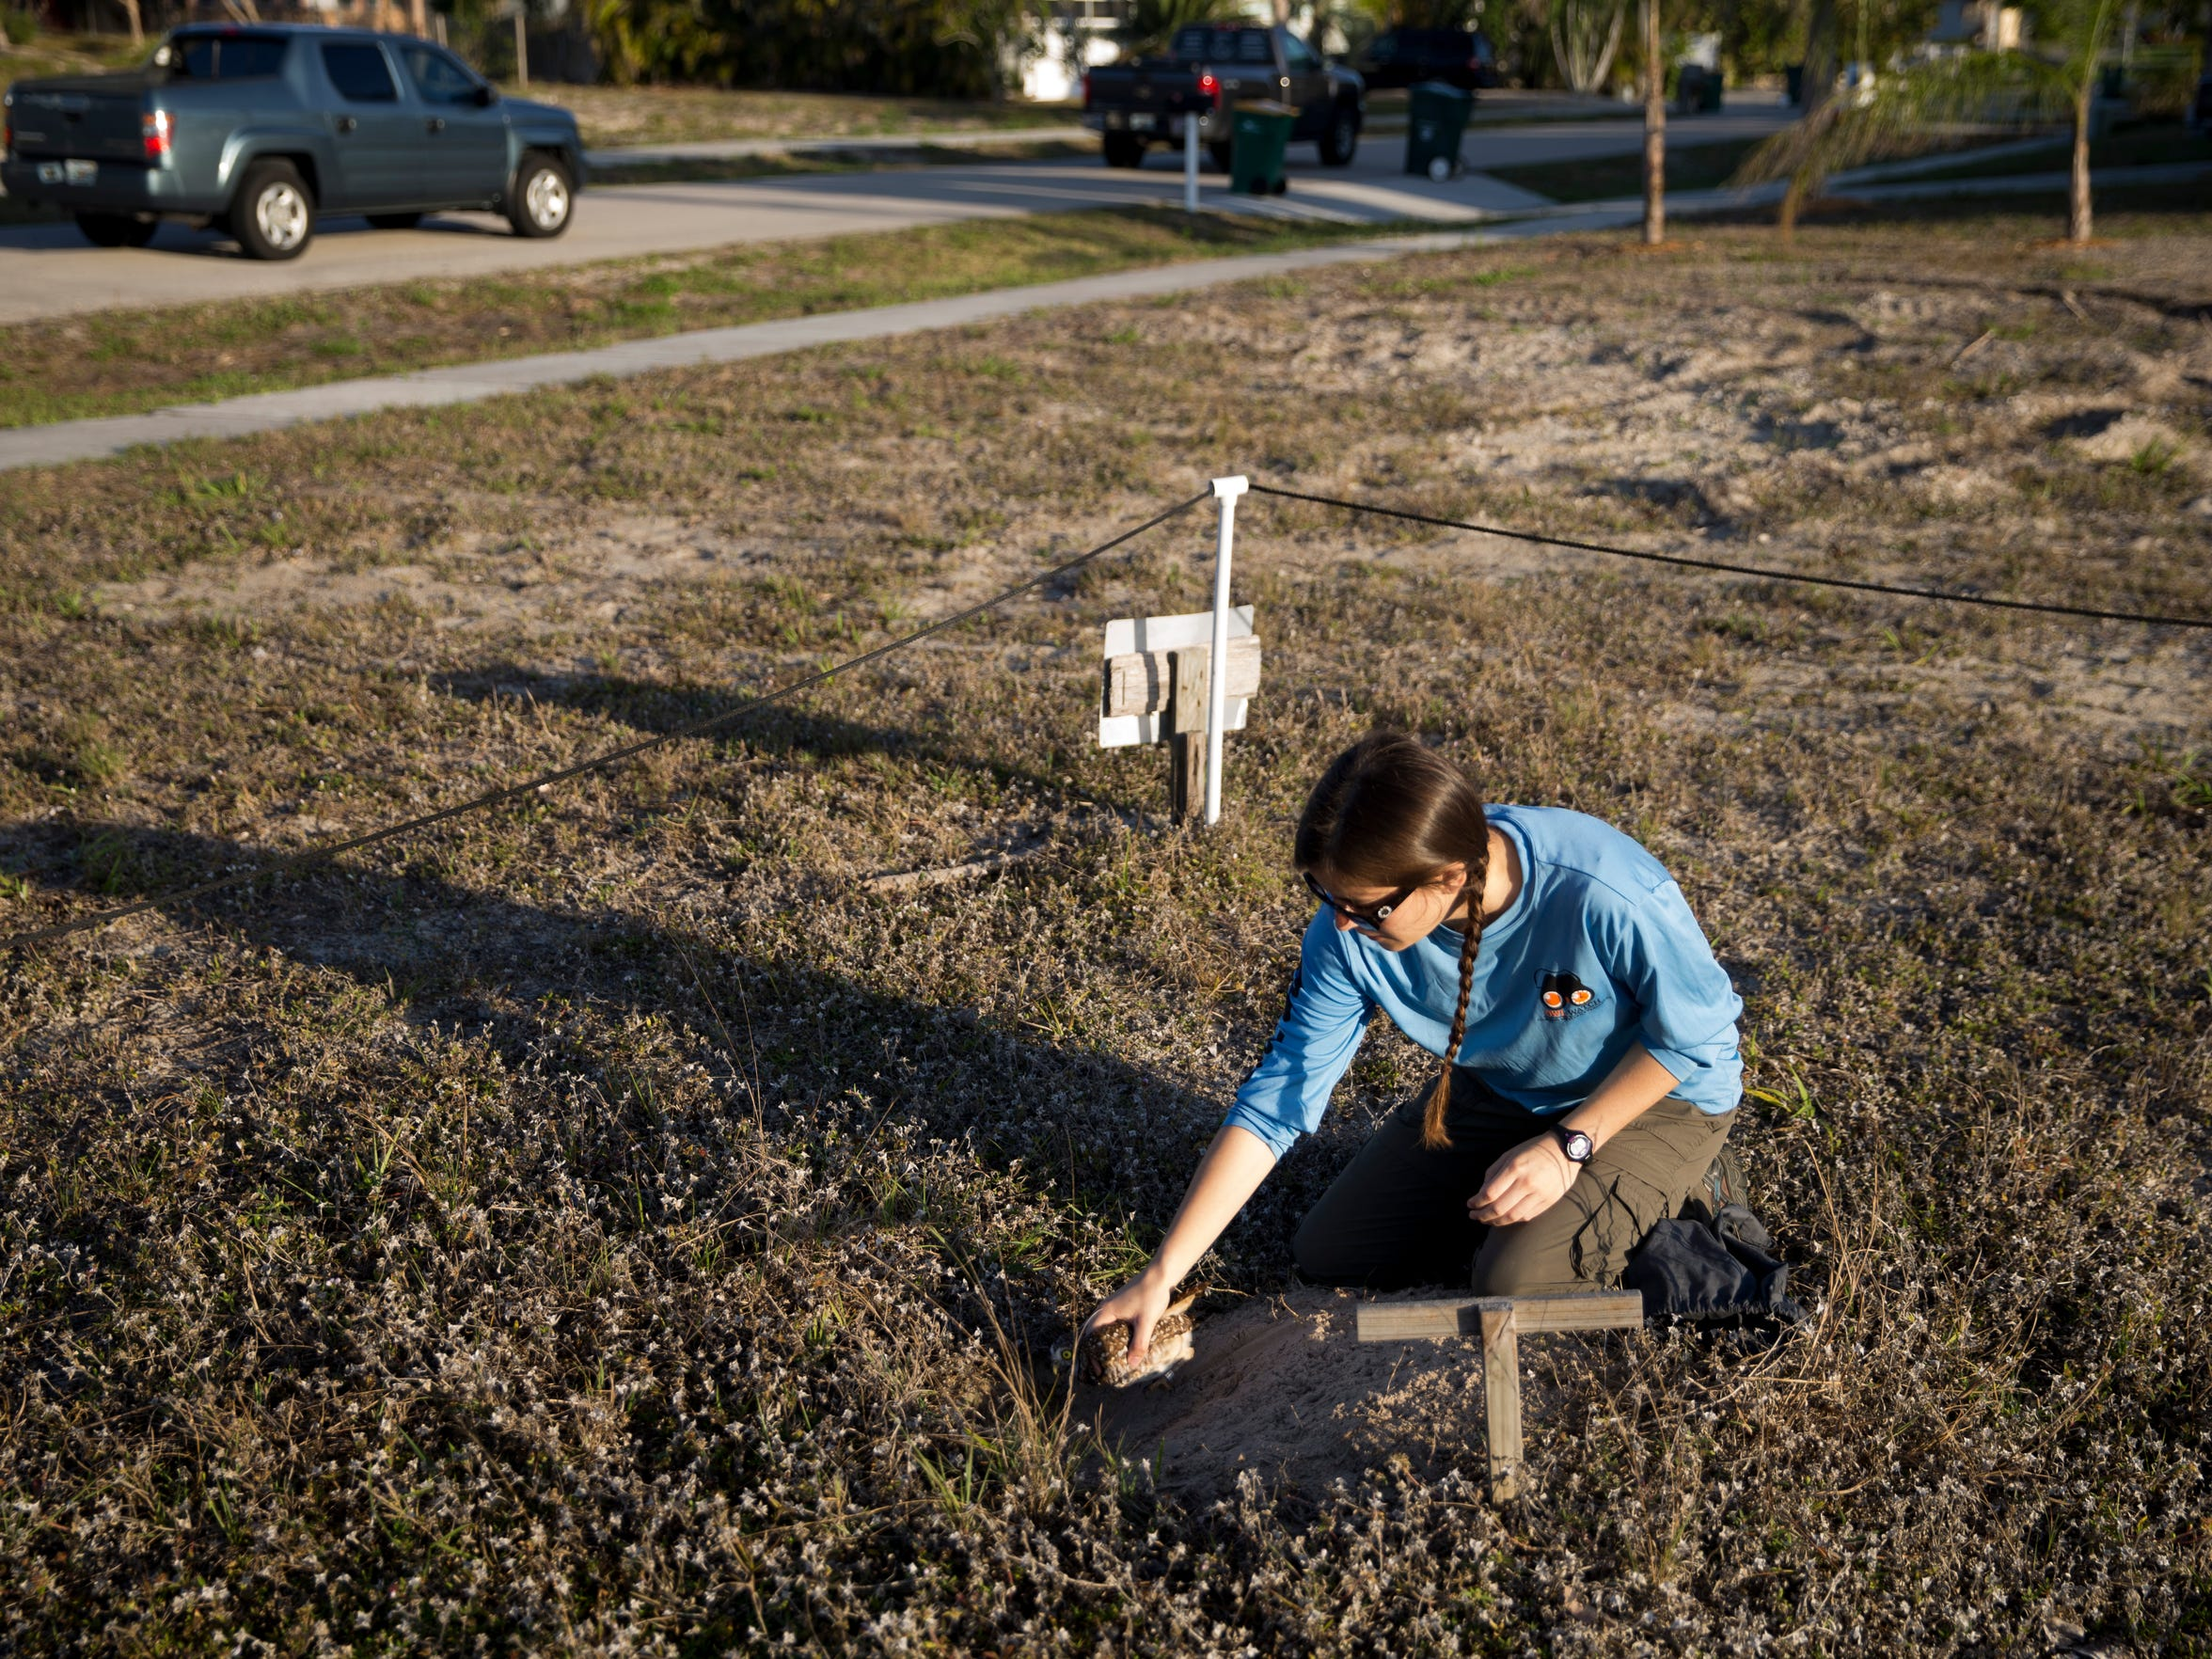 Allison Smith, a student researcher at the University of Florida, returns a female burrowing owl to its home after banding its leg for future study in a vacant lot Thursday, March 1, 2018 in Marco Island. Smith has access to 60 total sites on the island allowing her to study and engage with these threatened birds.